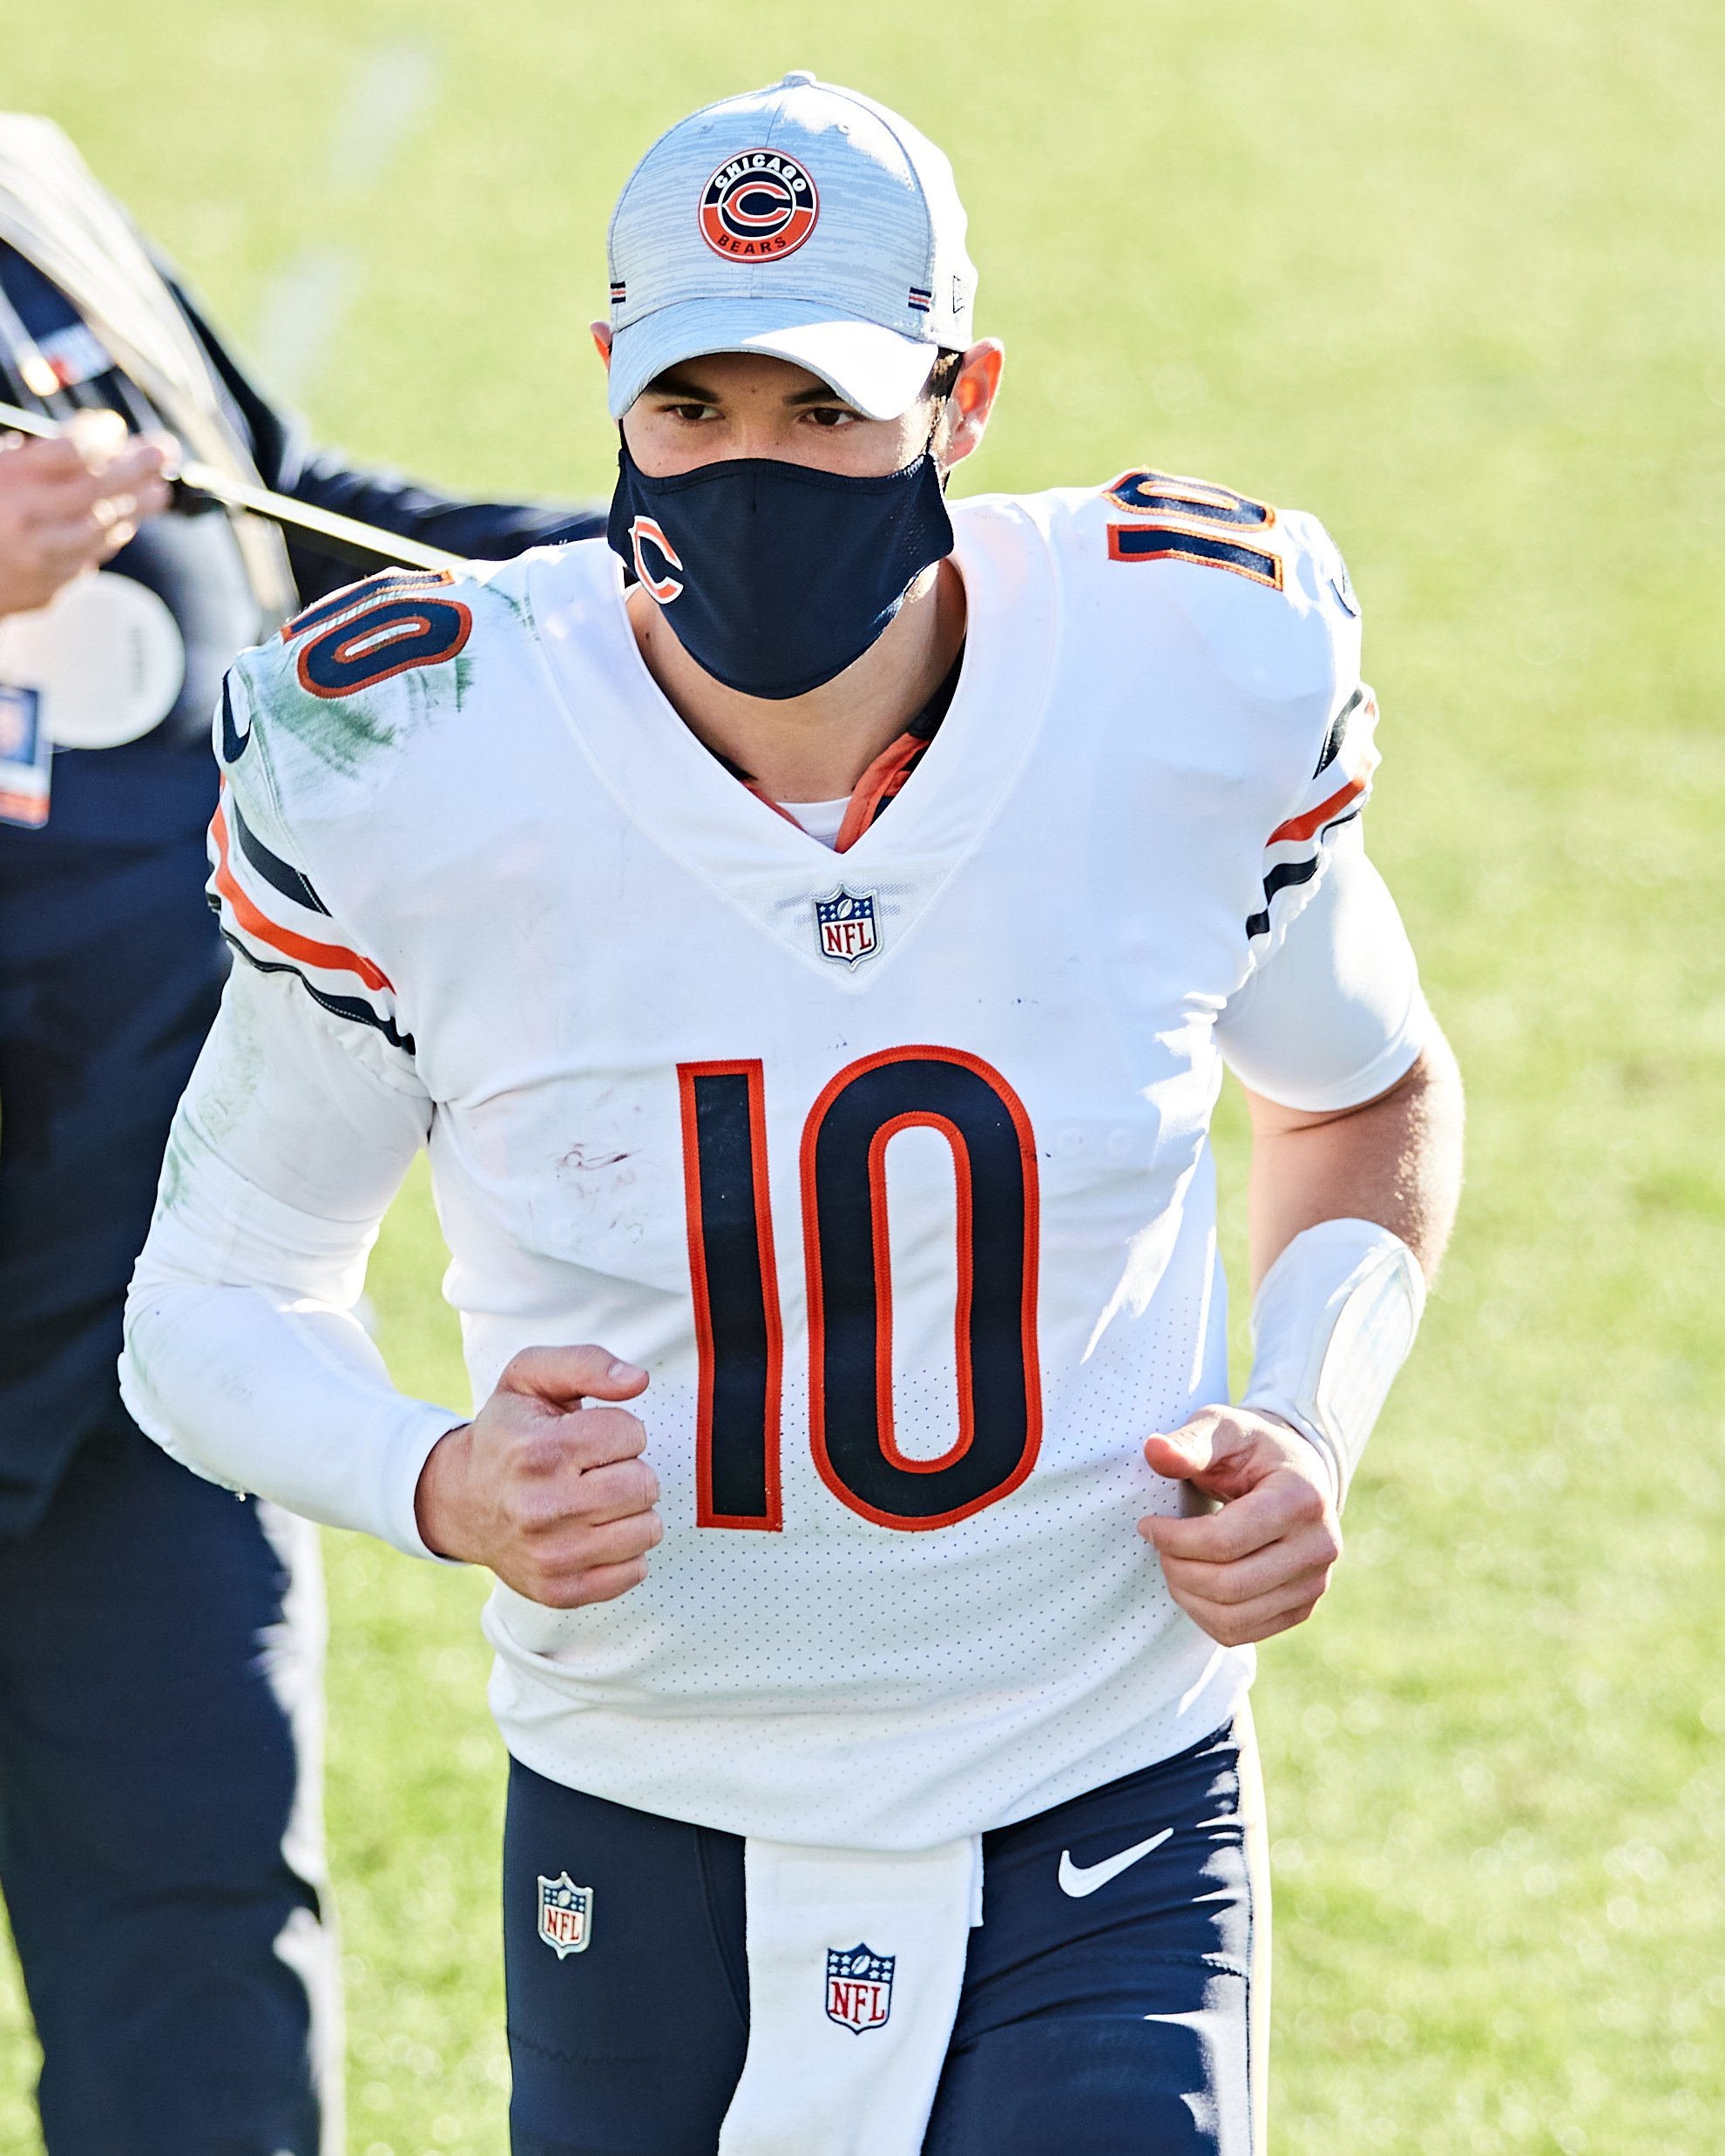 Mitch Trubisky in action against the Jacksonville Jaguars in December last year. | Photo: Getty Images.